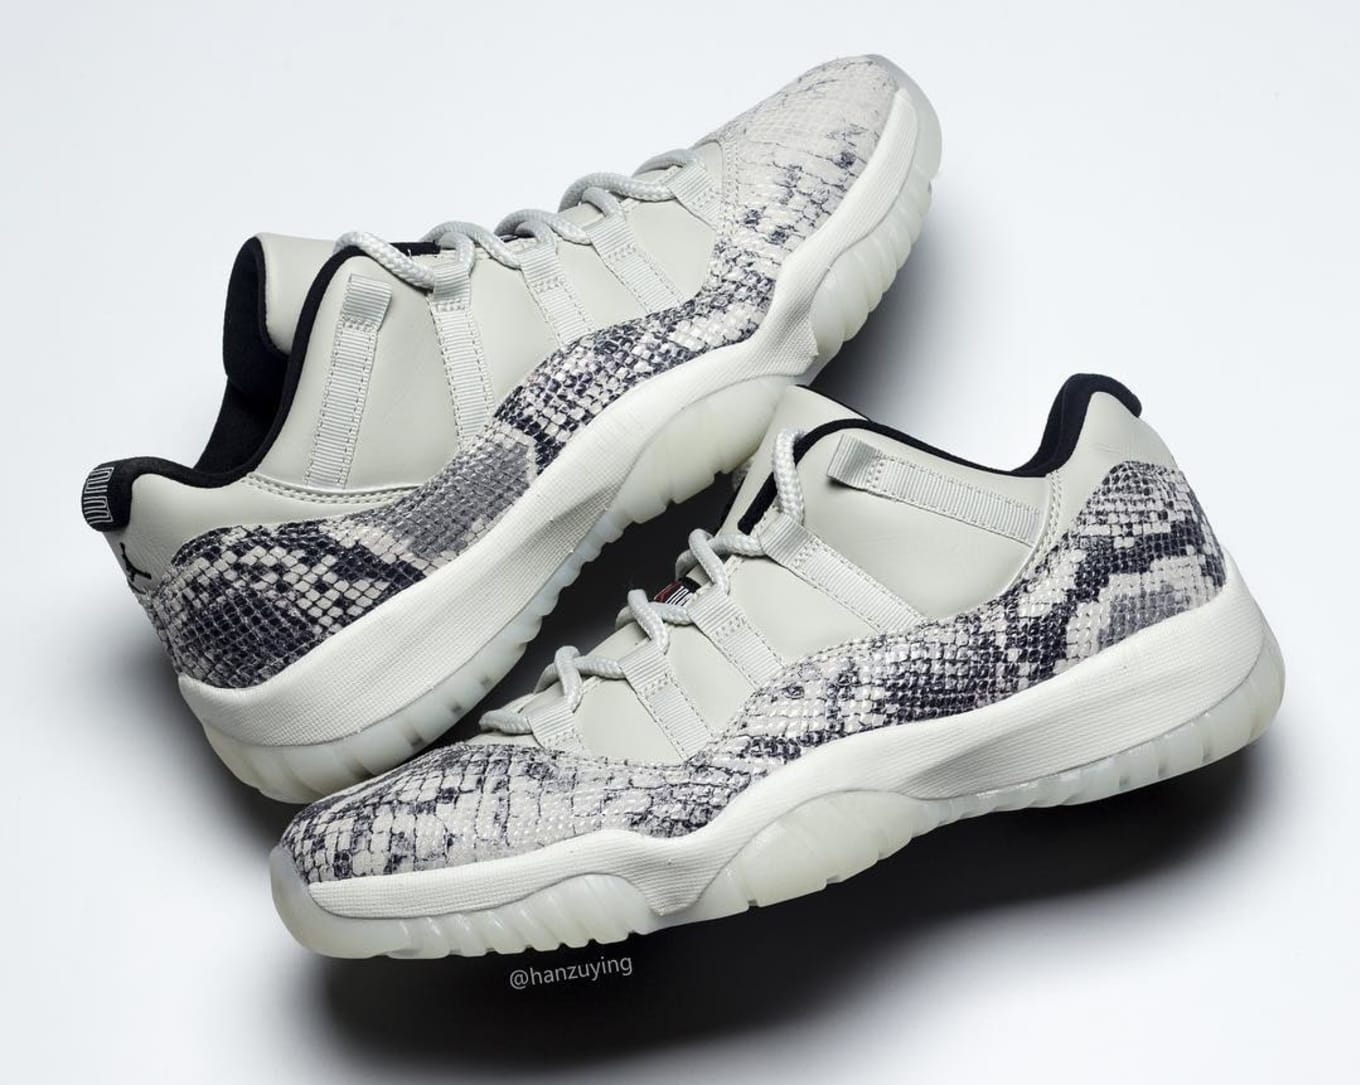 82ab58cf1fe1 Air Jordan 11 Low SE  Snakeskin  Release Date CD6846-002